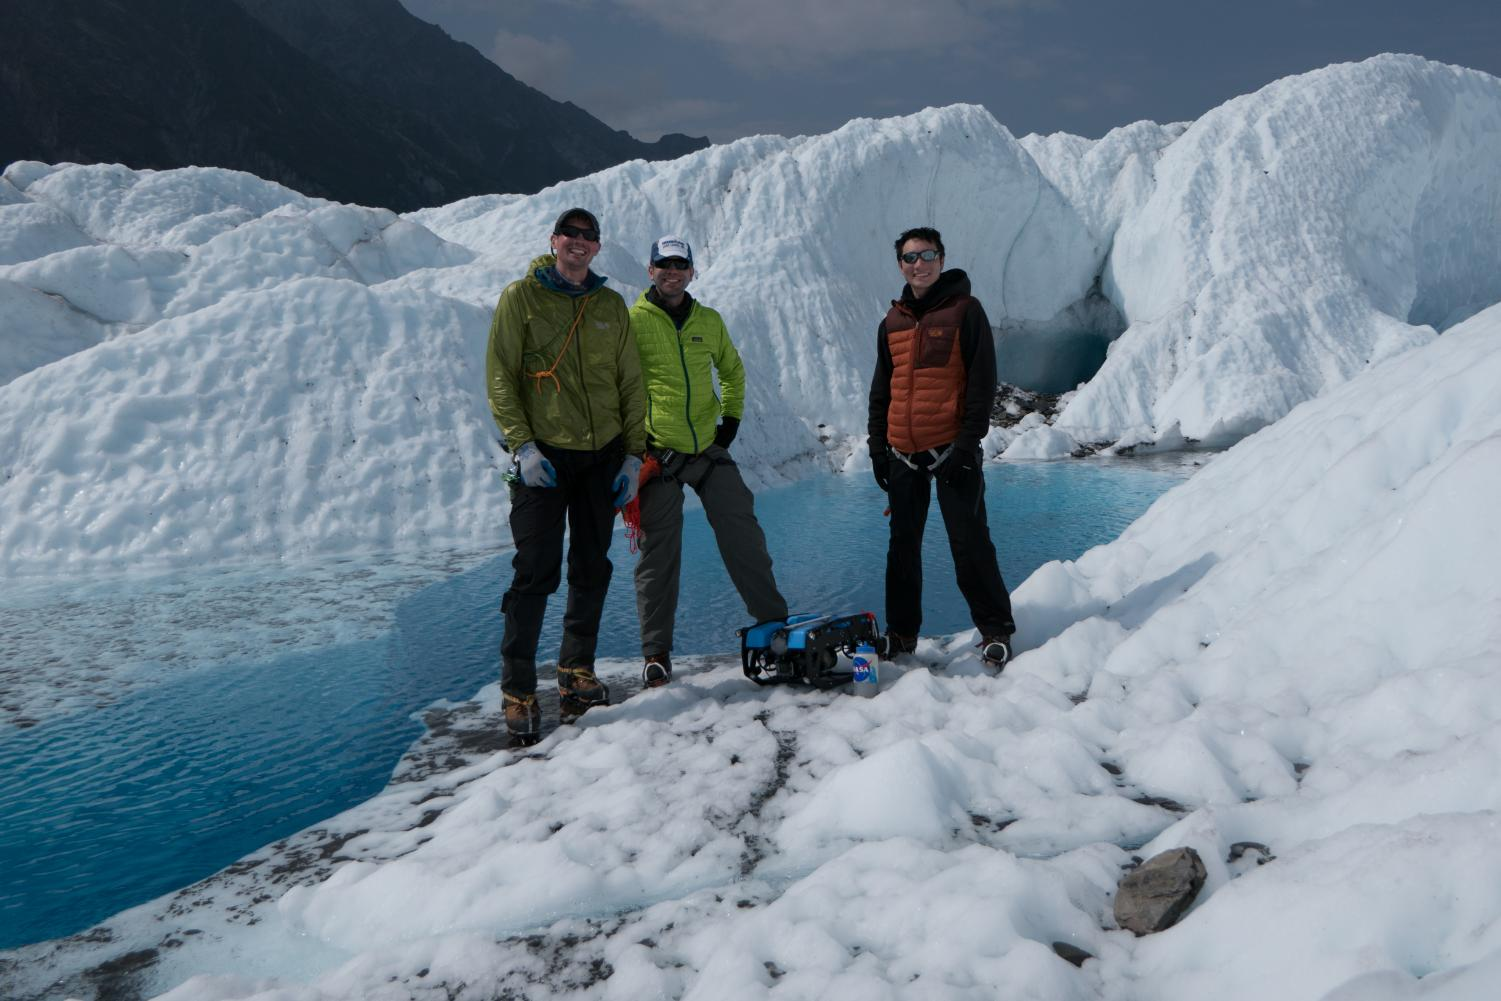 Andy+Klesh+%28center%29+traveled+to+Alaska%27s+Matanuska+Glacier+in+2017+to+test+out+mapping+technology+in+underwater+tunnels+called+moulins.+Klesh+said+that+same+technology+may+one+day+be+used+on+Jupiter%27s+moon+Europa.+Also+pictured%3A+Keeton+Kroon+and+John+Leighty.+